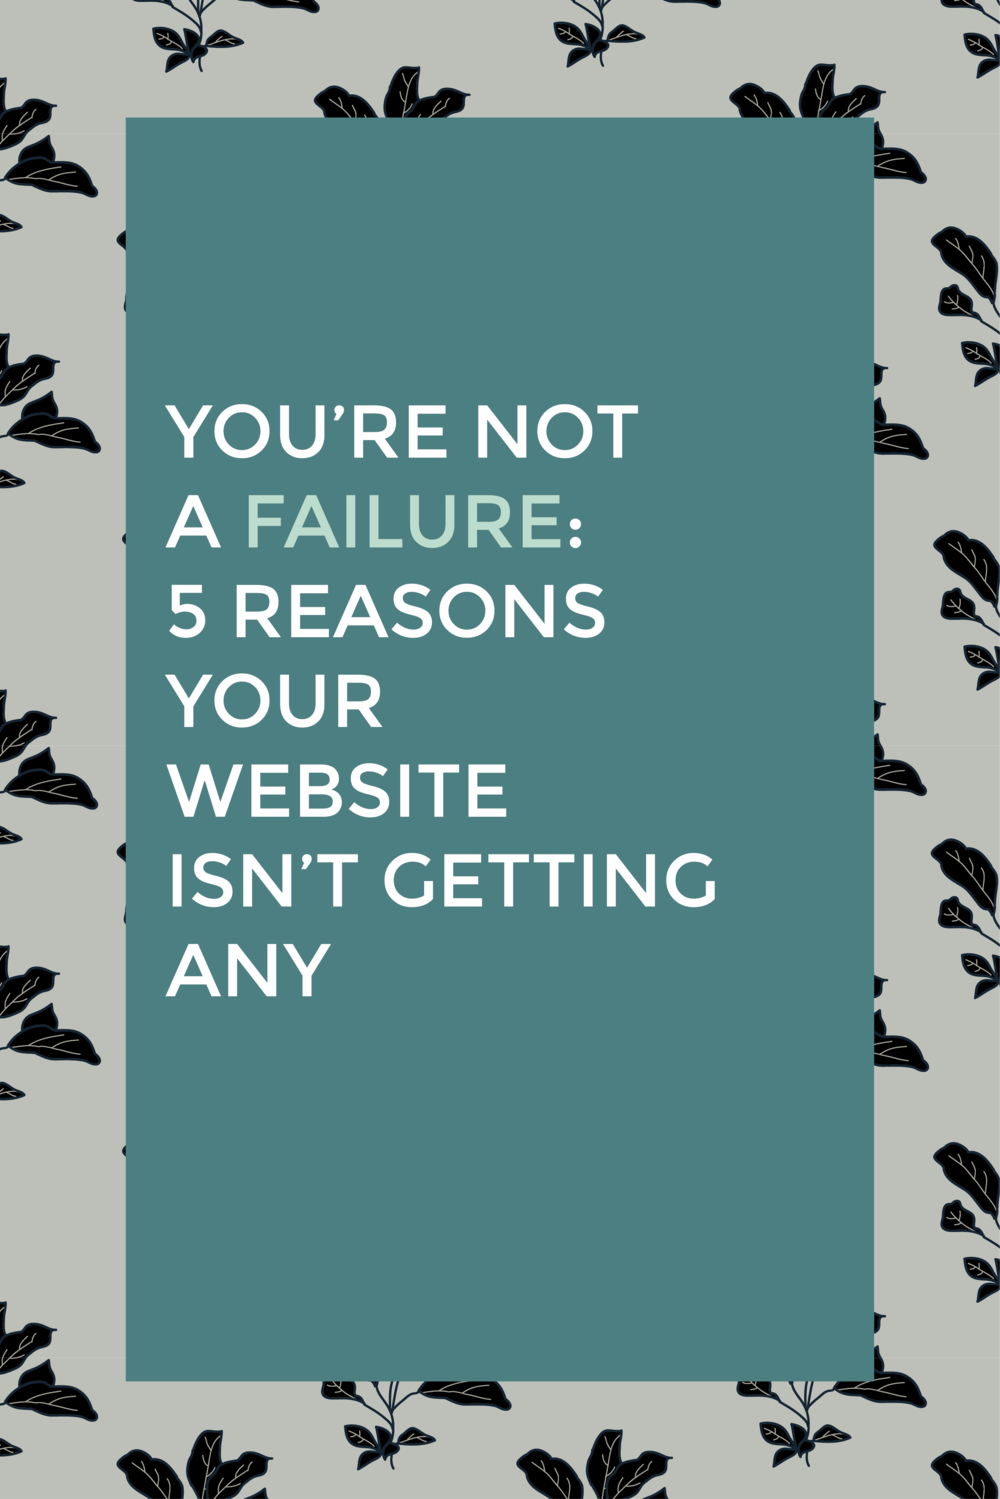 You're Not A Failure:  5 Reasons Your Website Isn't Getting Any